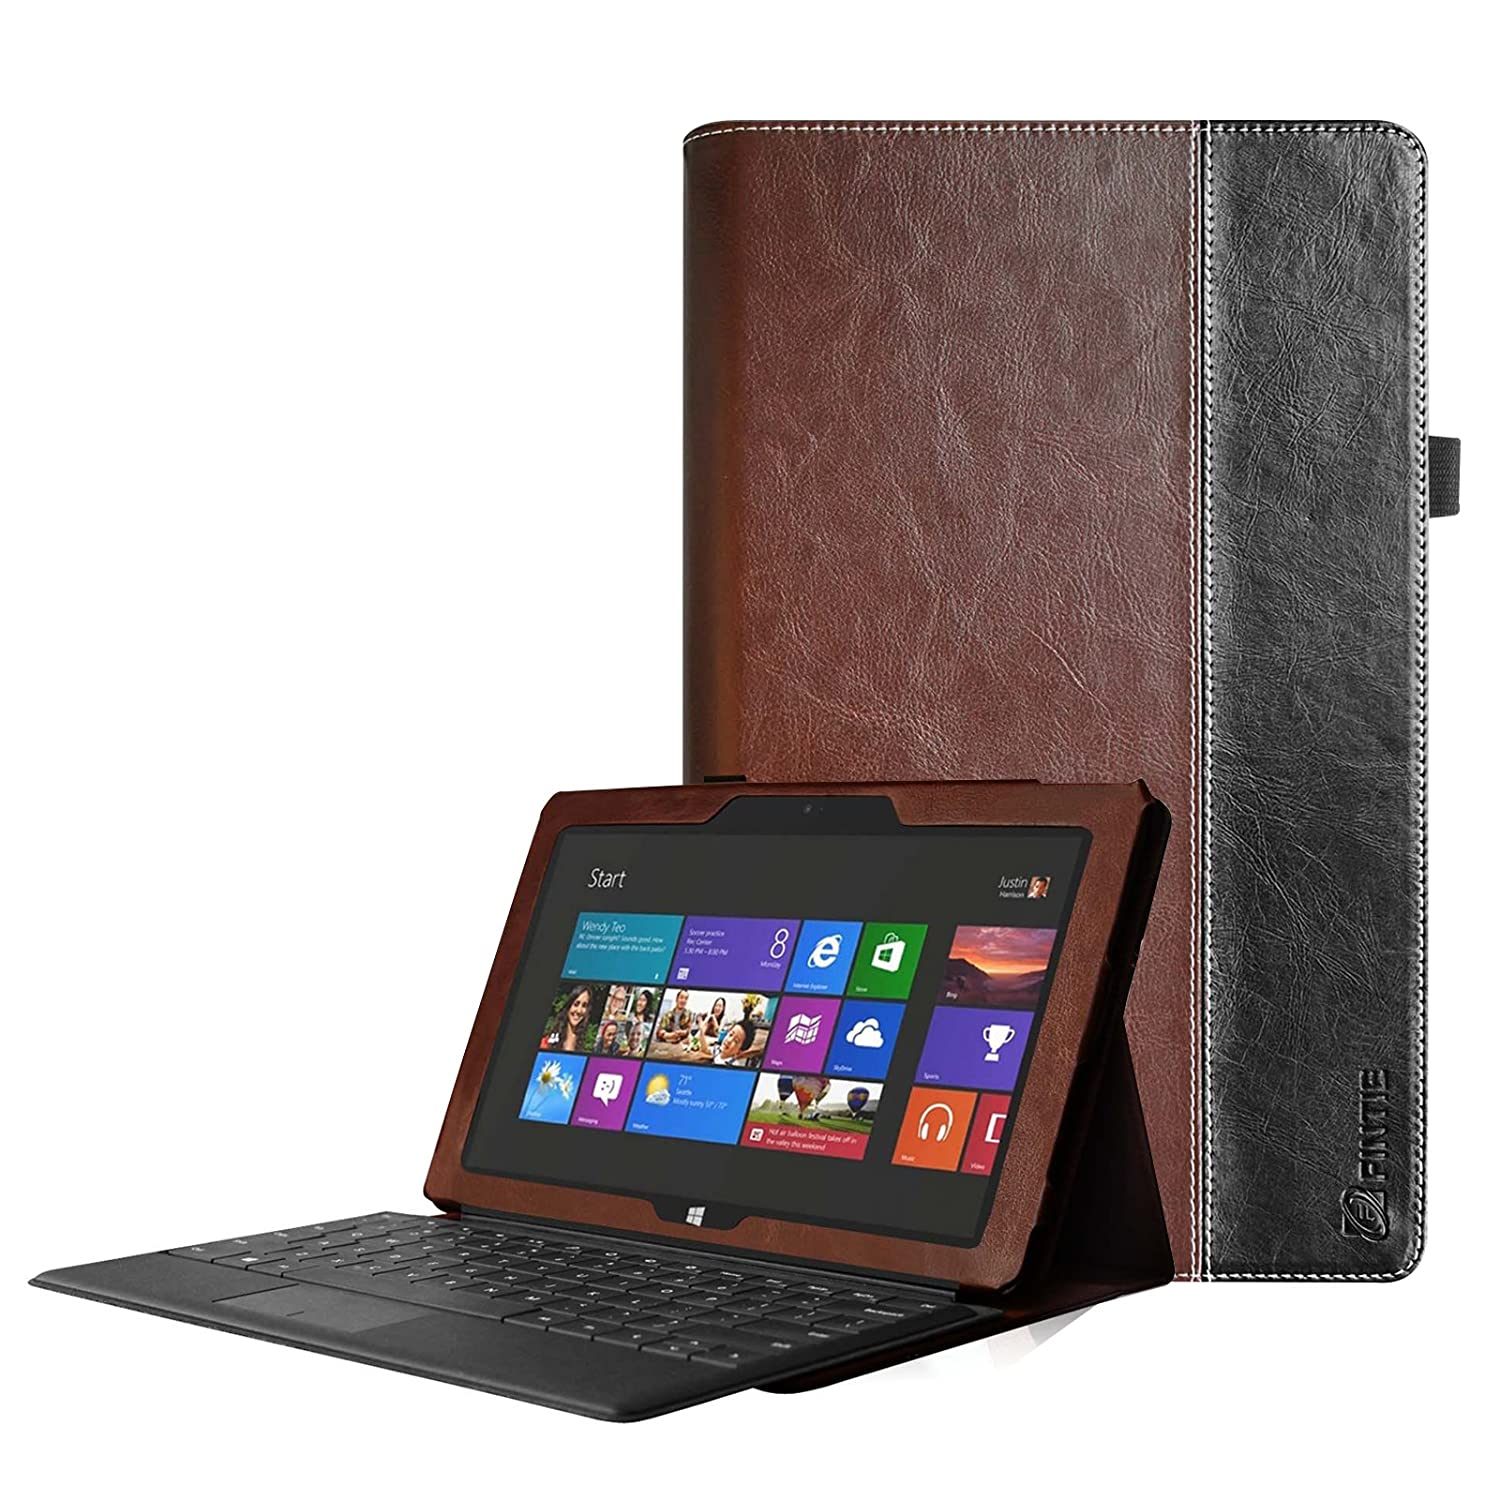 [Corner Protection] Fintie Folio Case for Microsoft Surface RT / Surface 2 10.6 inch Tablet Slim Fit with Stylus Holder (Does Not Fit Windows 8 Pro Version) - Brown/Black LYSB00OAOASCM-ELECTRNCS